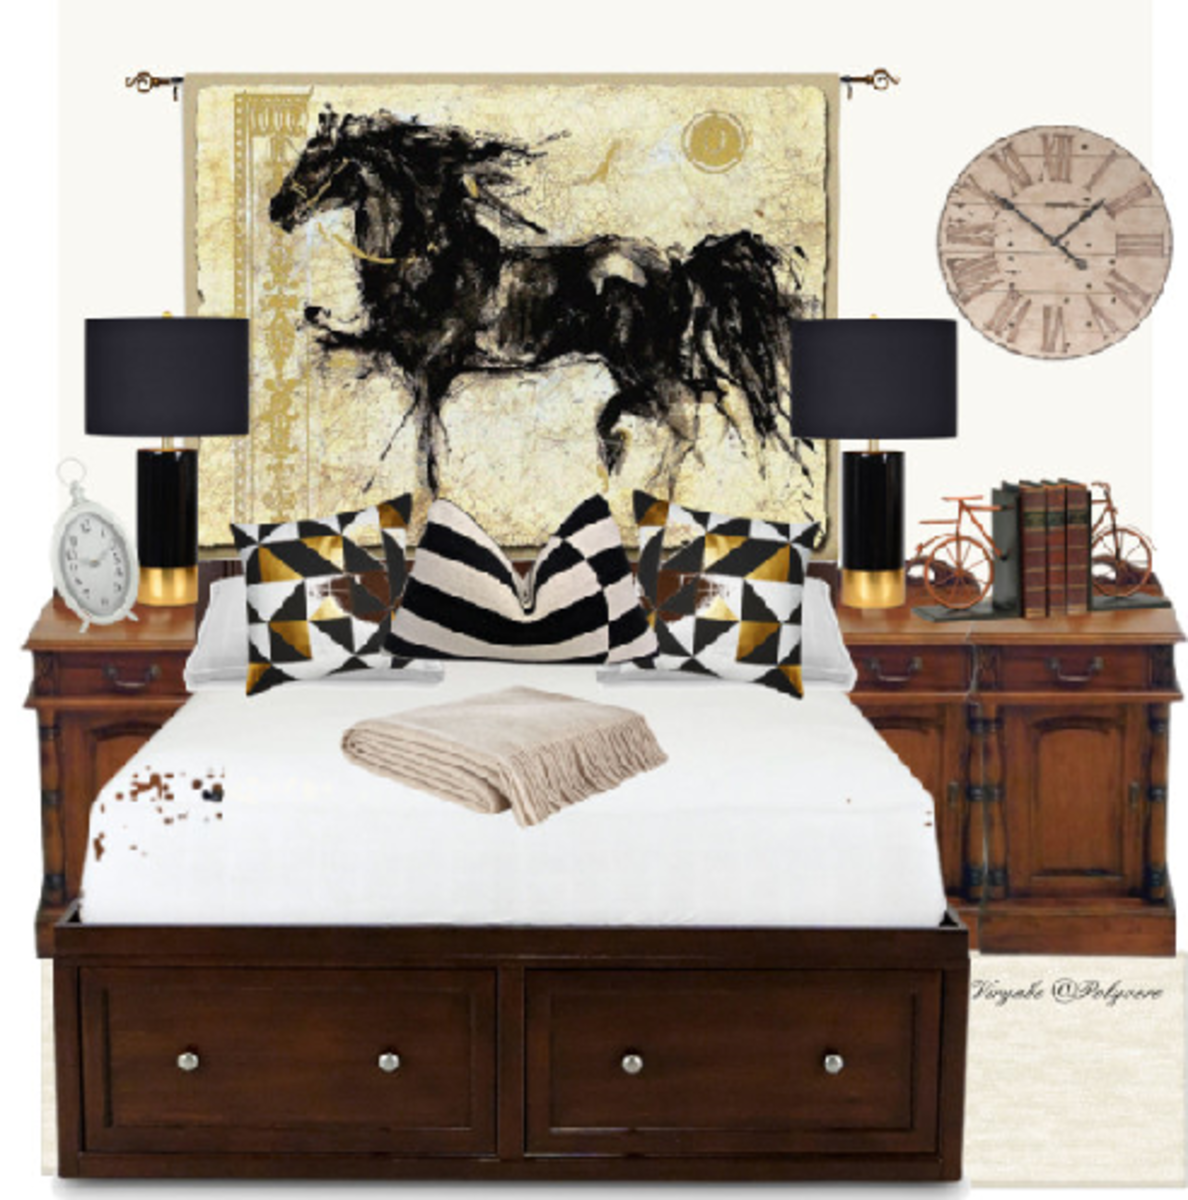 A wall tapestry that serves as a headboard. An impressive, unique, and stylish substitute for the conventional headboard styles.